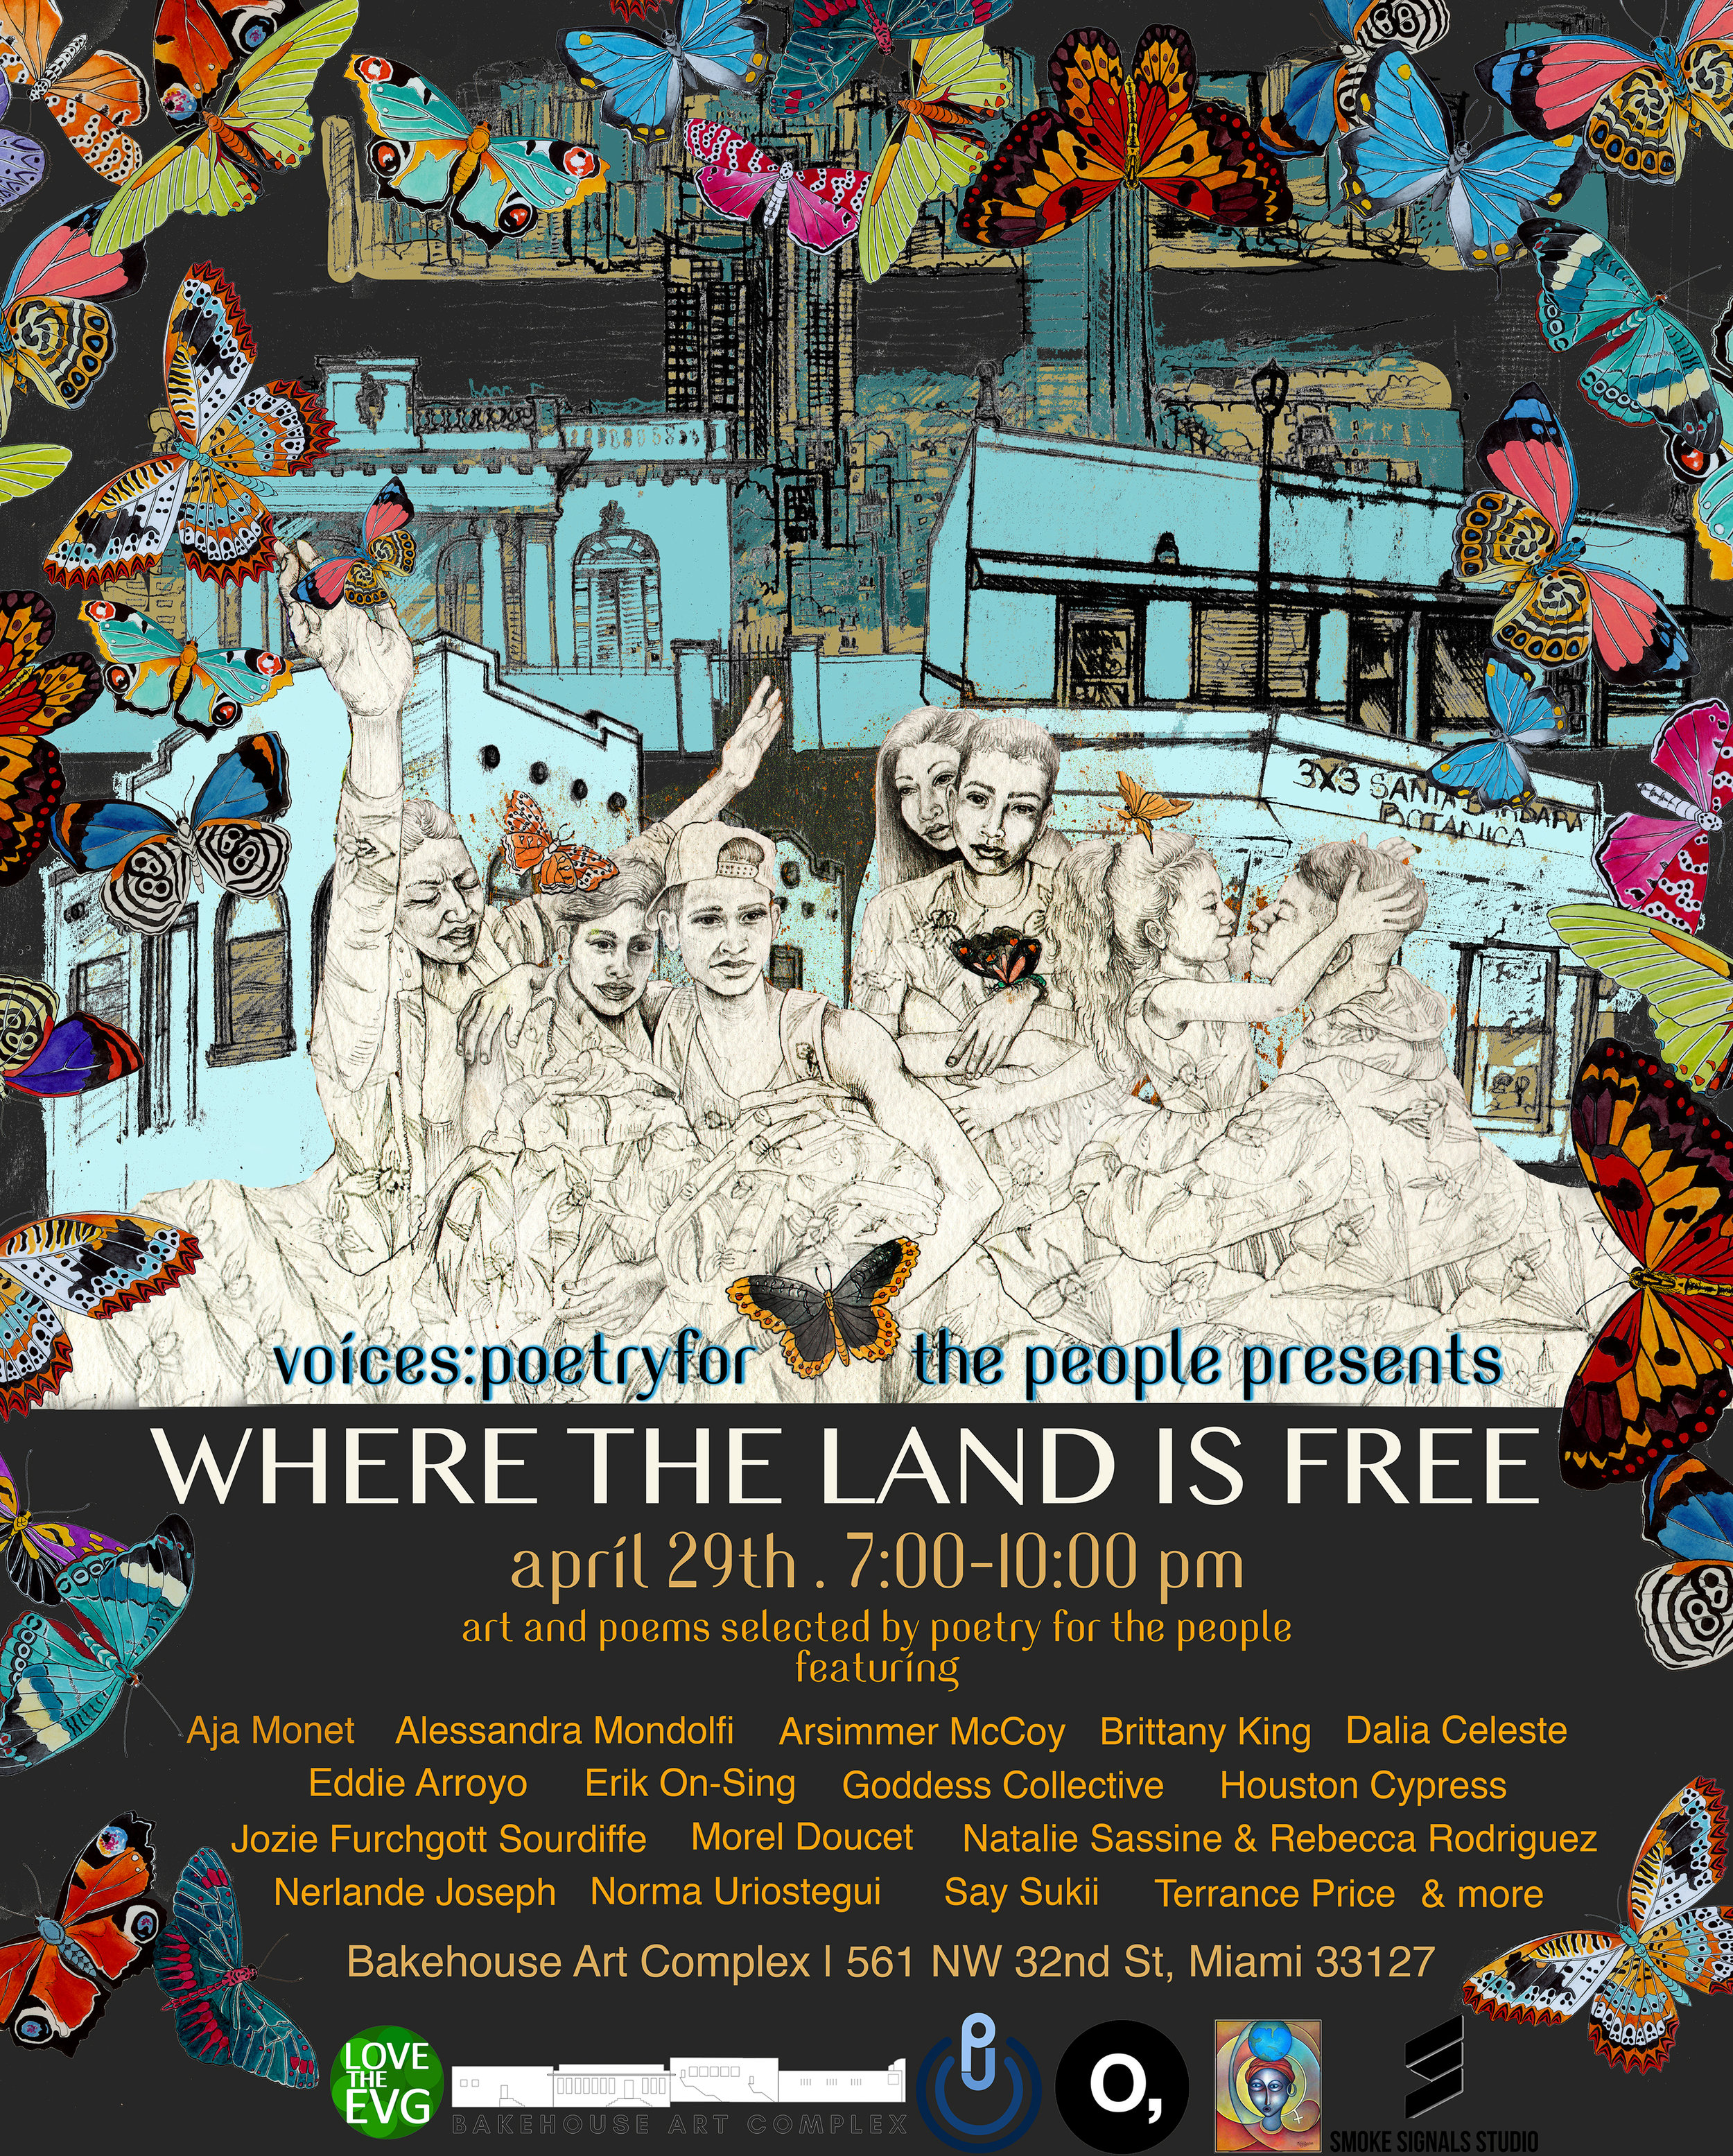 p4p Where the land is free poster.jpg